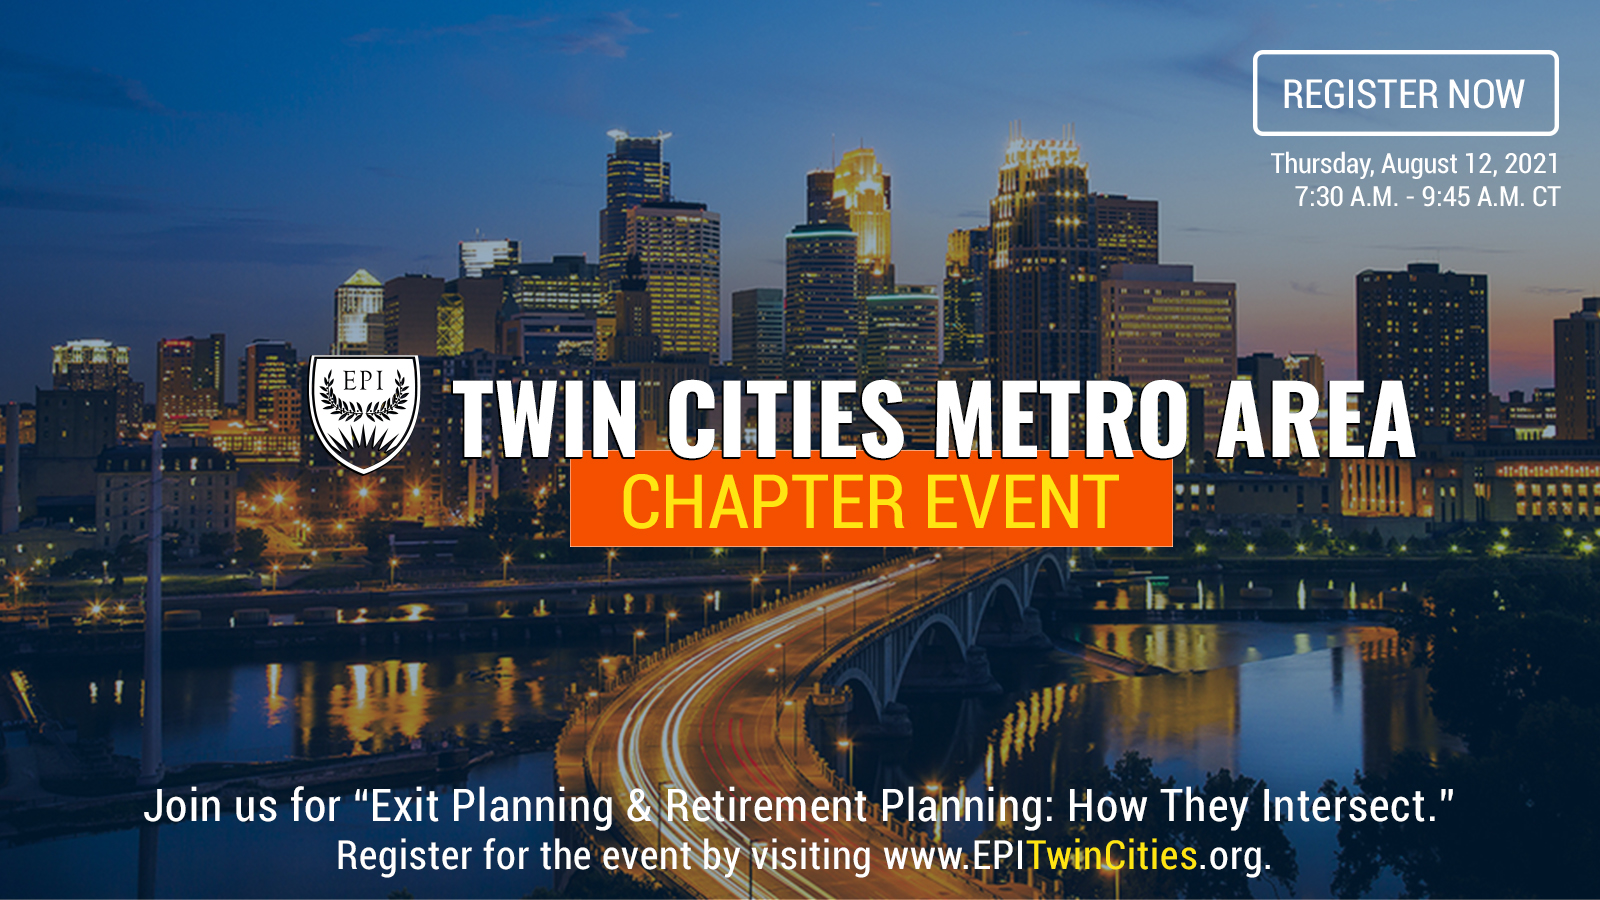 Exit Planning & Retirement Planning: How They Intersect